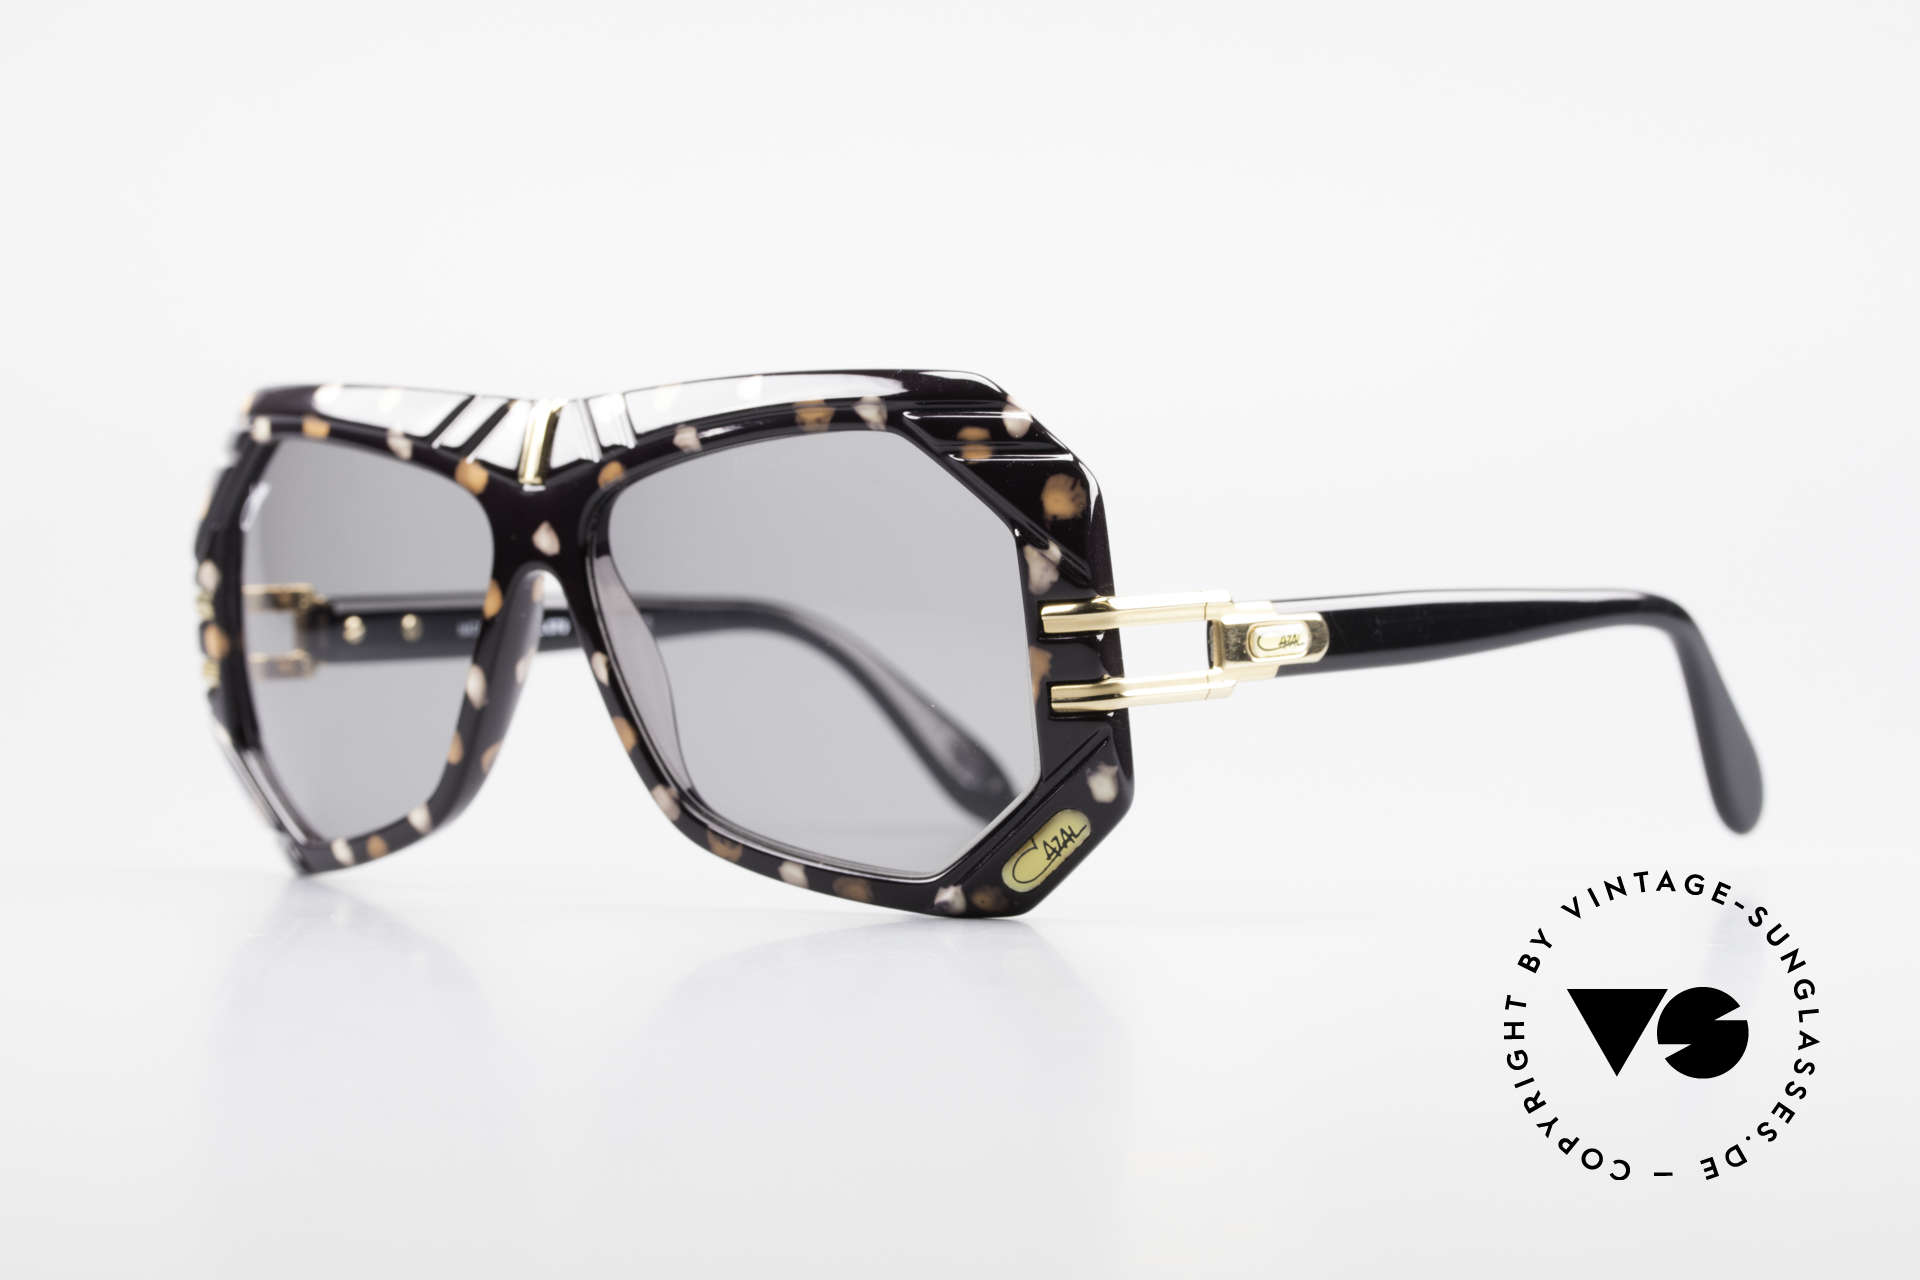 Cazal 868 West Germany Designer Shades, color code 679: white-caramel mottled / black, Made for Men and Women